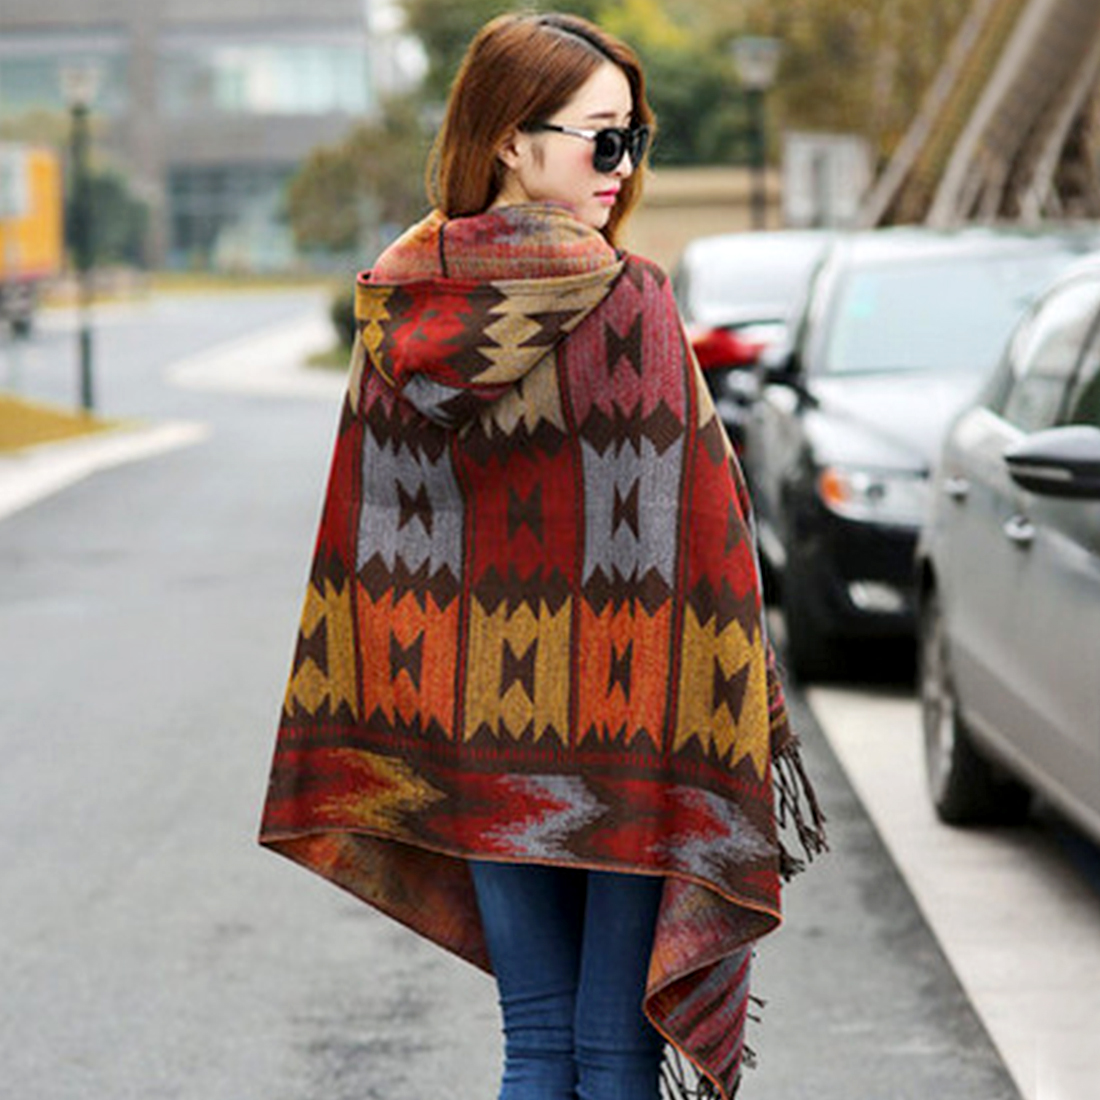 Ladies Warm Winter Hooded Wrap Poncho Wool Scarves  Cape,Mantle Ponchos And Capes Aztec Outwear Casacos Femininos Tippet(China)